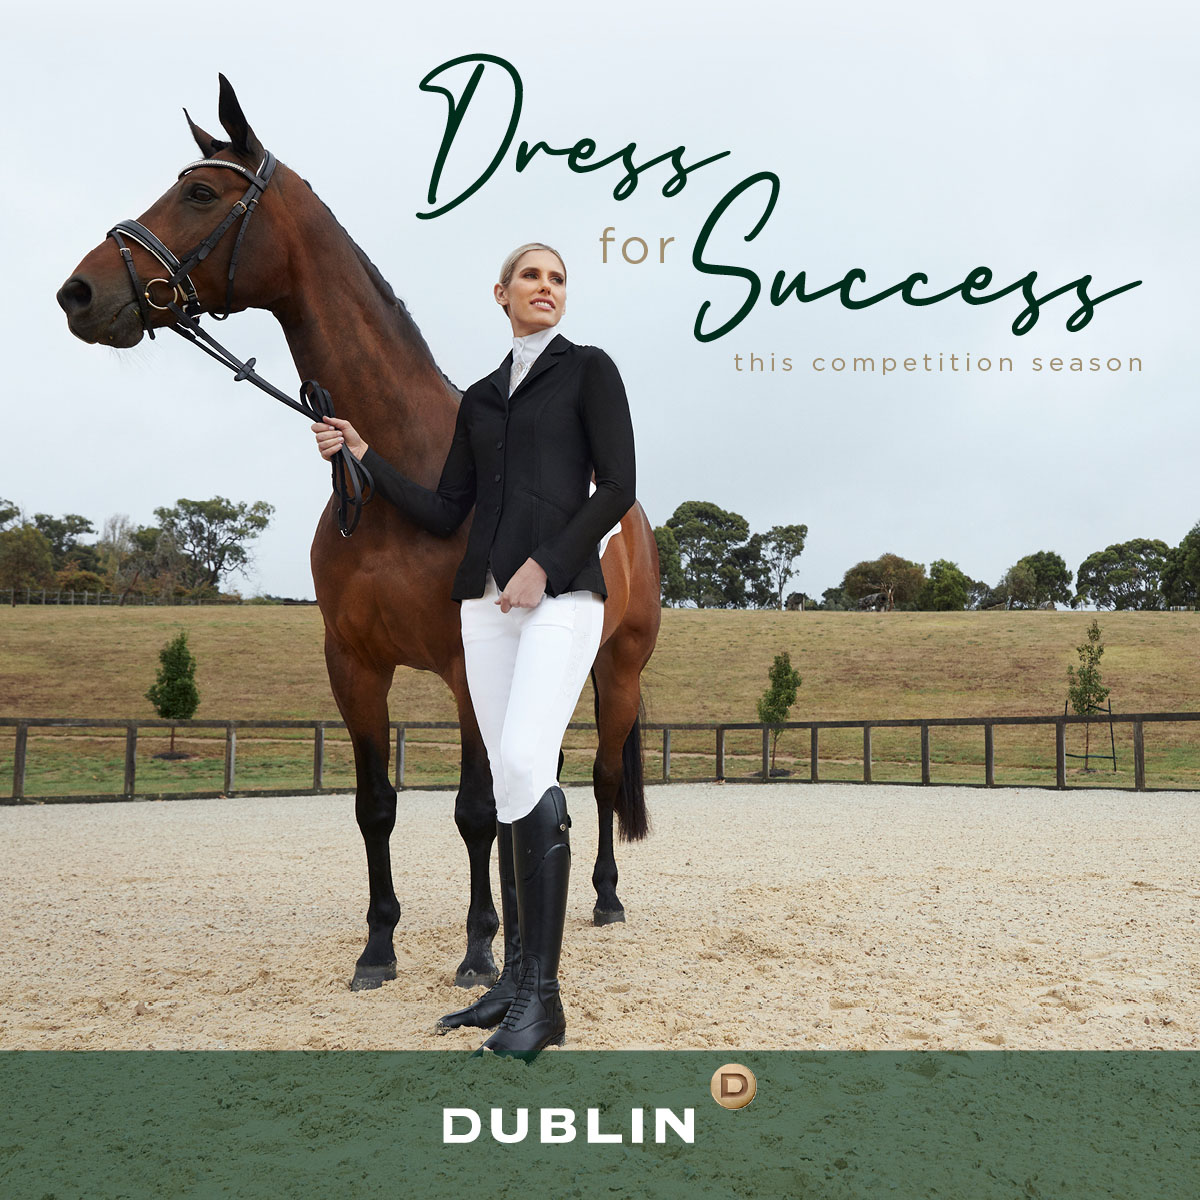 What to Wear for Dressage